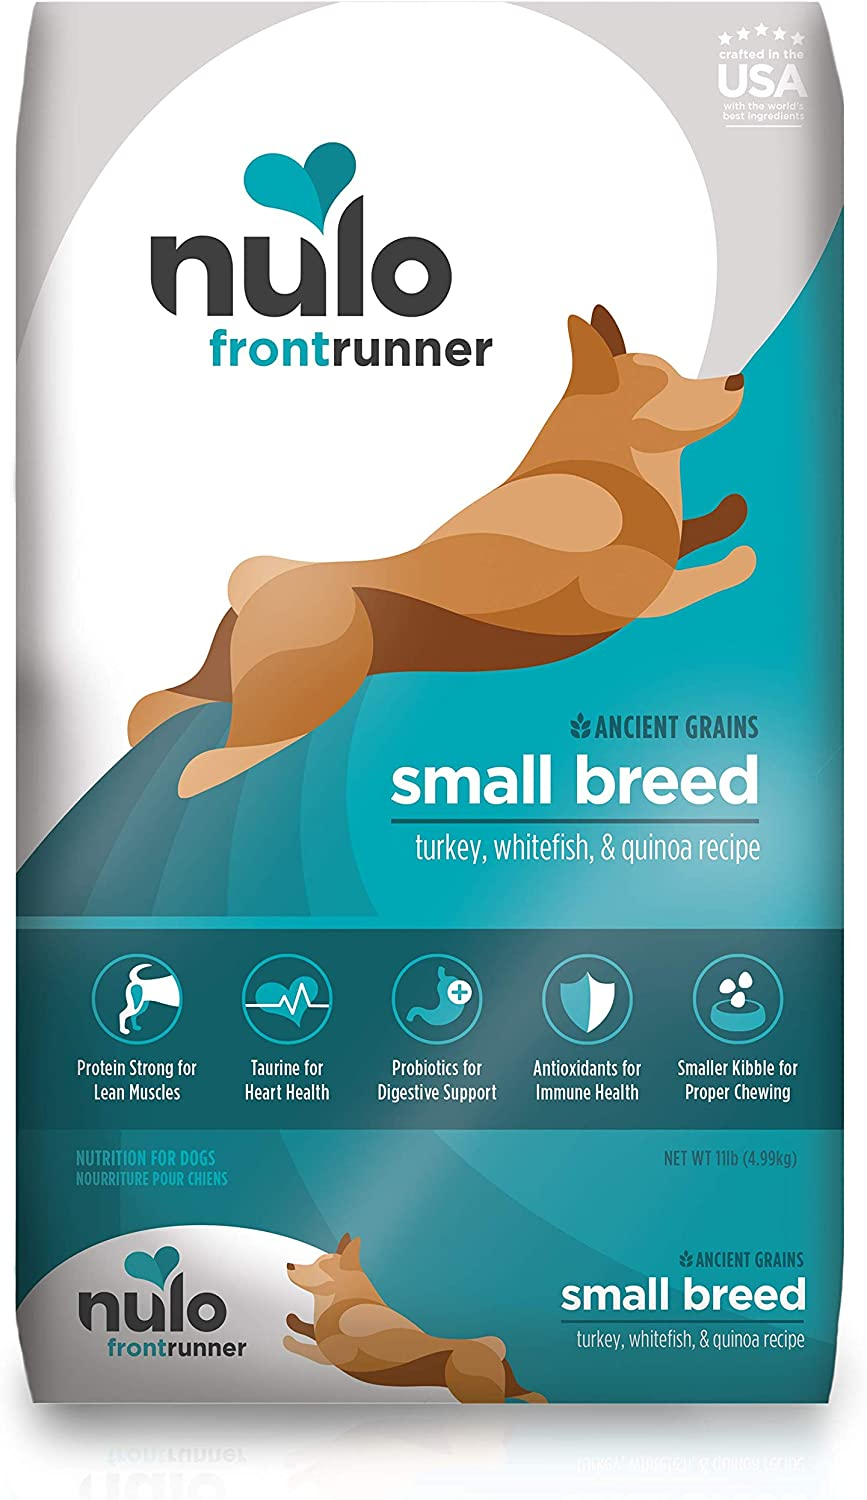 Nulo Frontrunner Small Breed Dog Food with Turkey, Whitefish & Quinoa, 11 lbs - Pet Food with Antioxidants and Probiotics for Digestive and Immune Health - Premium Dry Dog Food for Small Dogs